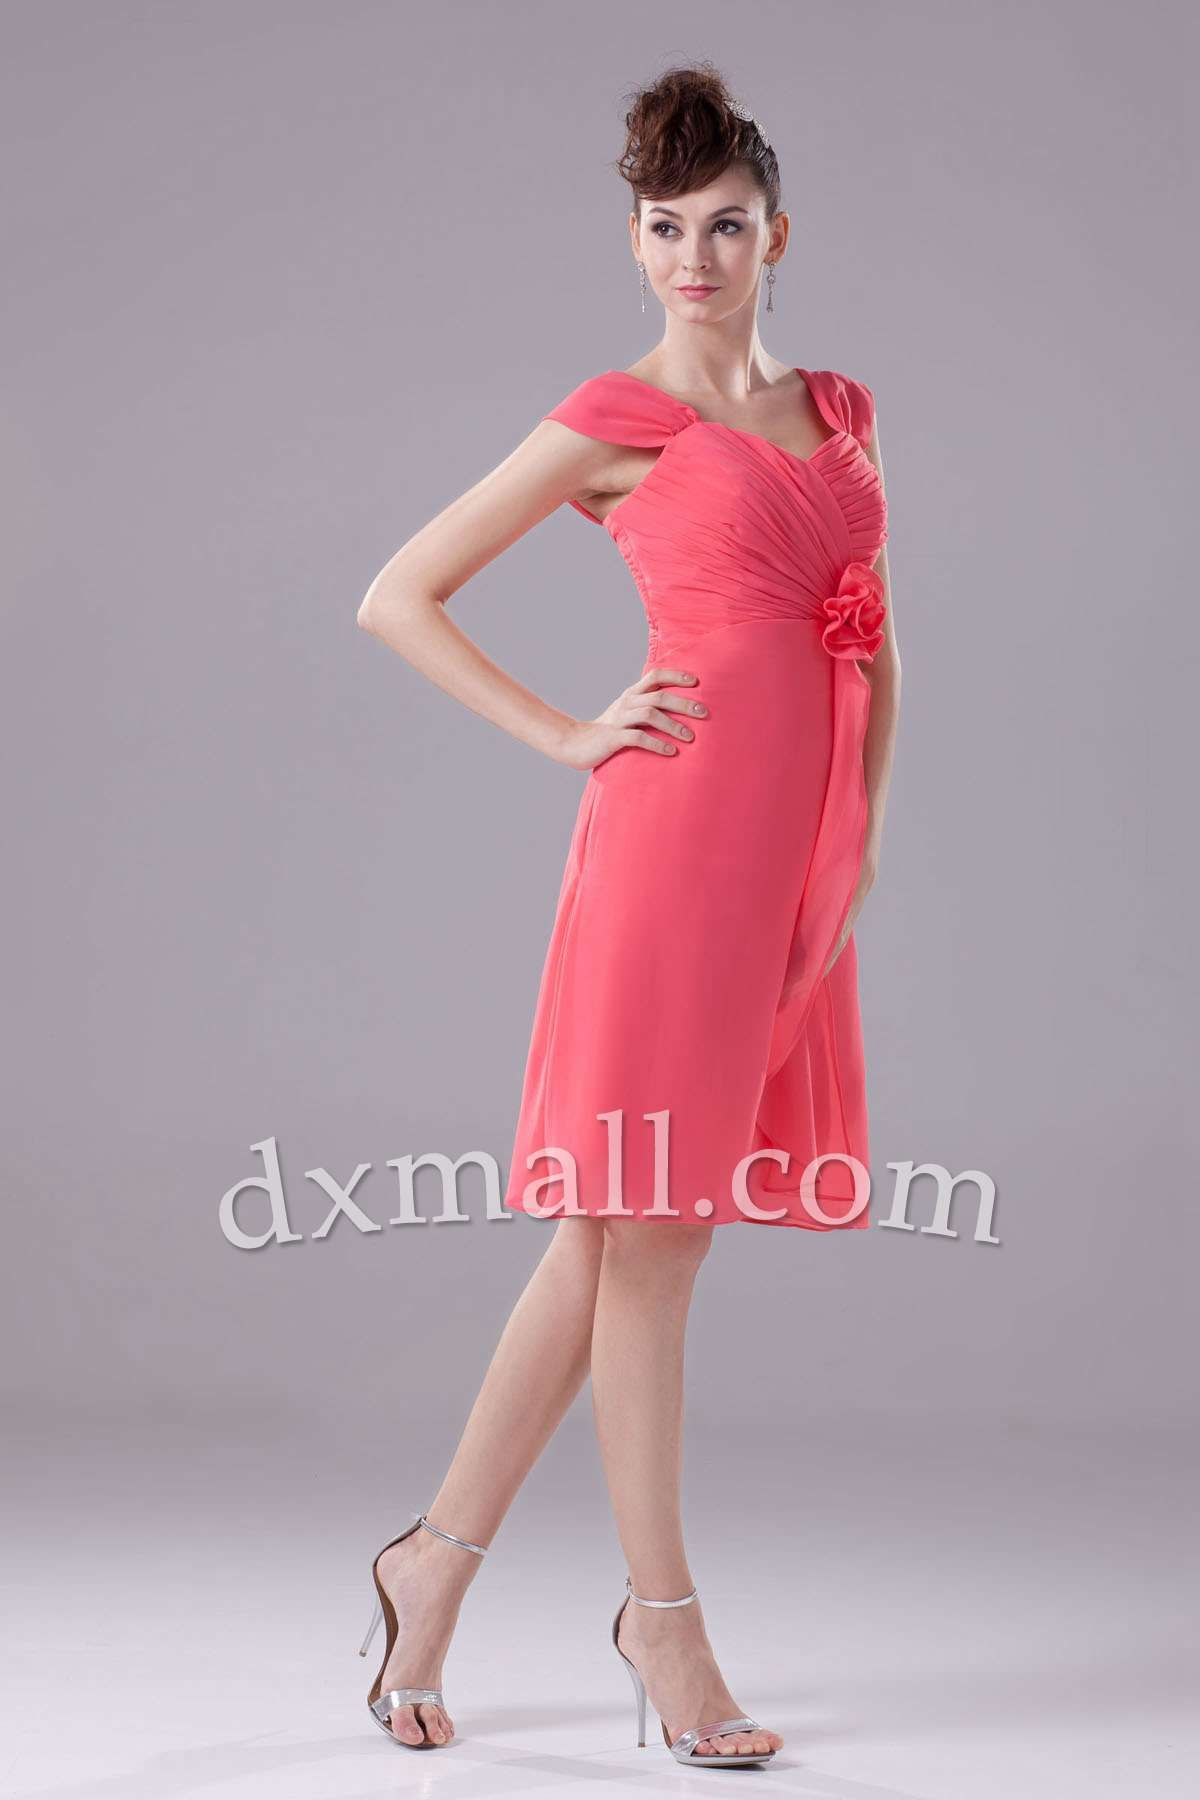 Short wedding guest dresses straps knee length chiffon picture shown